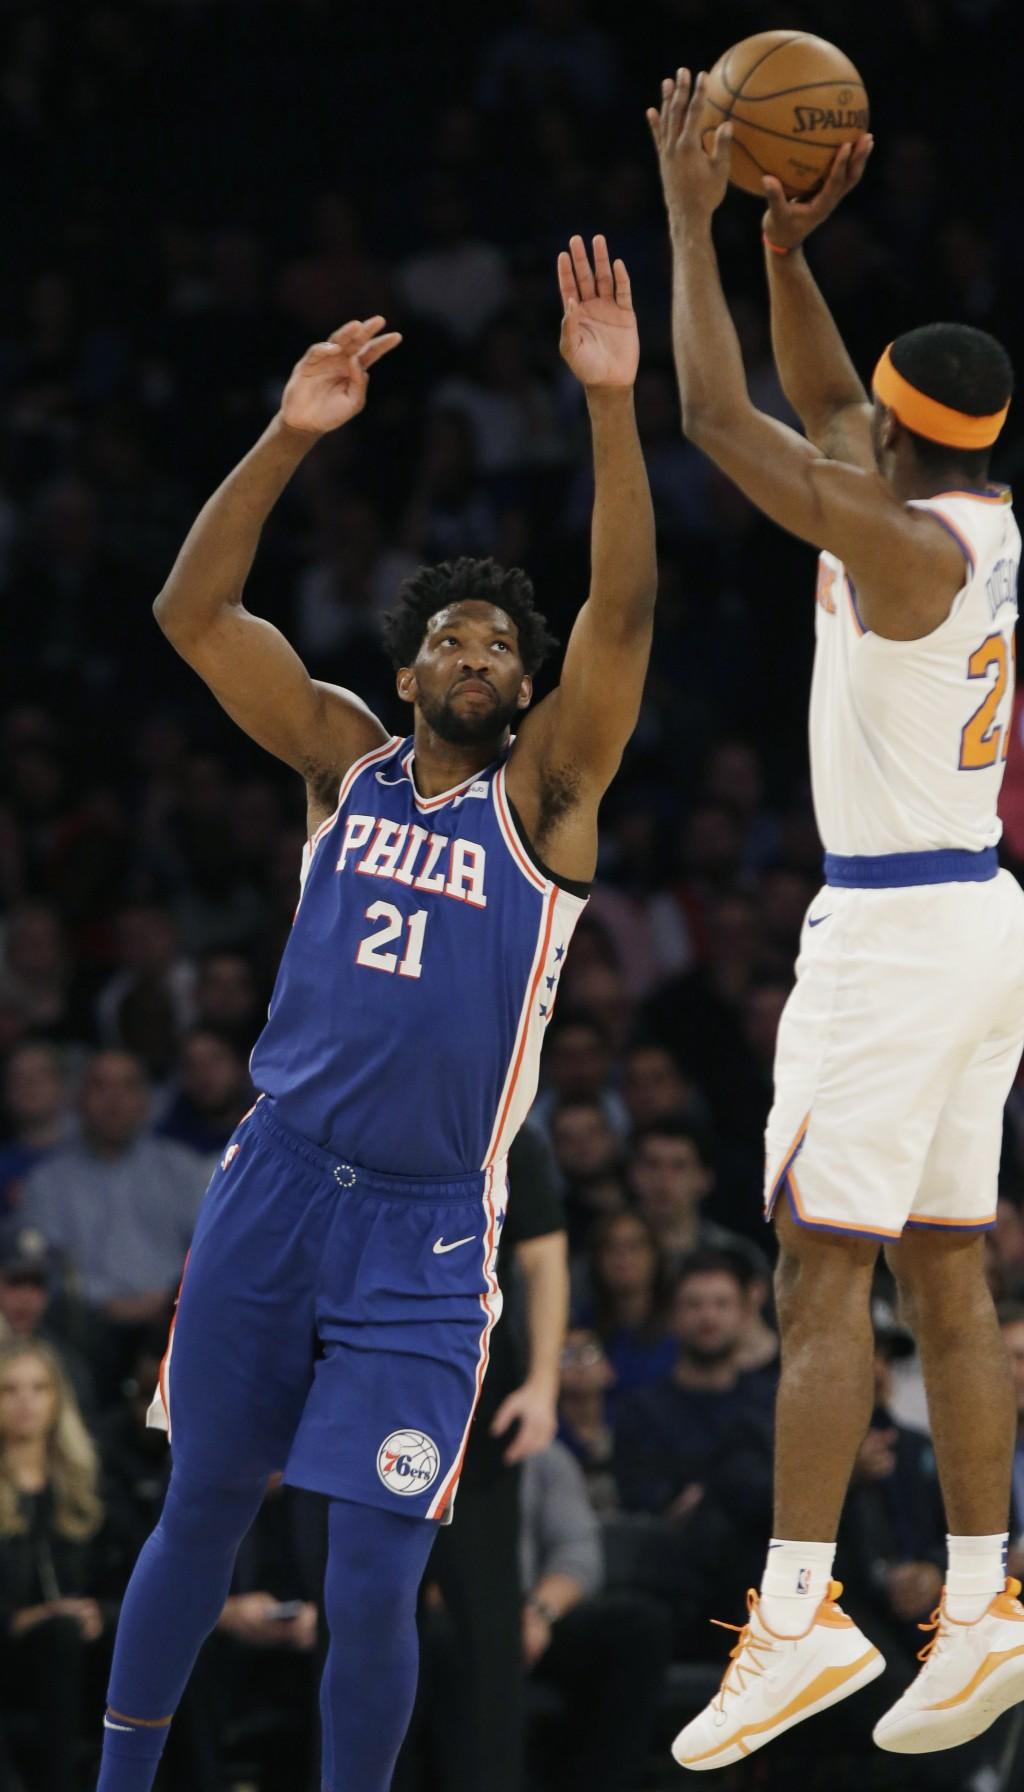 Philadelphia 76ers' Joel Embiid (21) runs out to defend a shot by New York Knicks' Damyean Dotson (21) during the first half of an NBA basketball game...